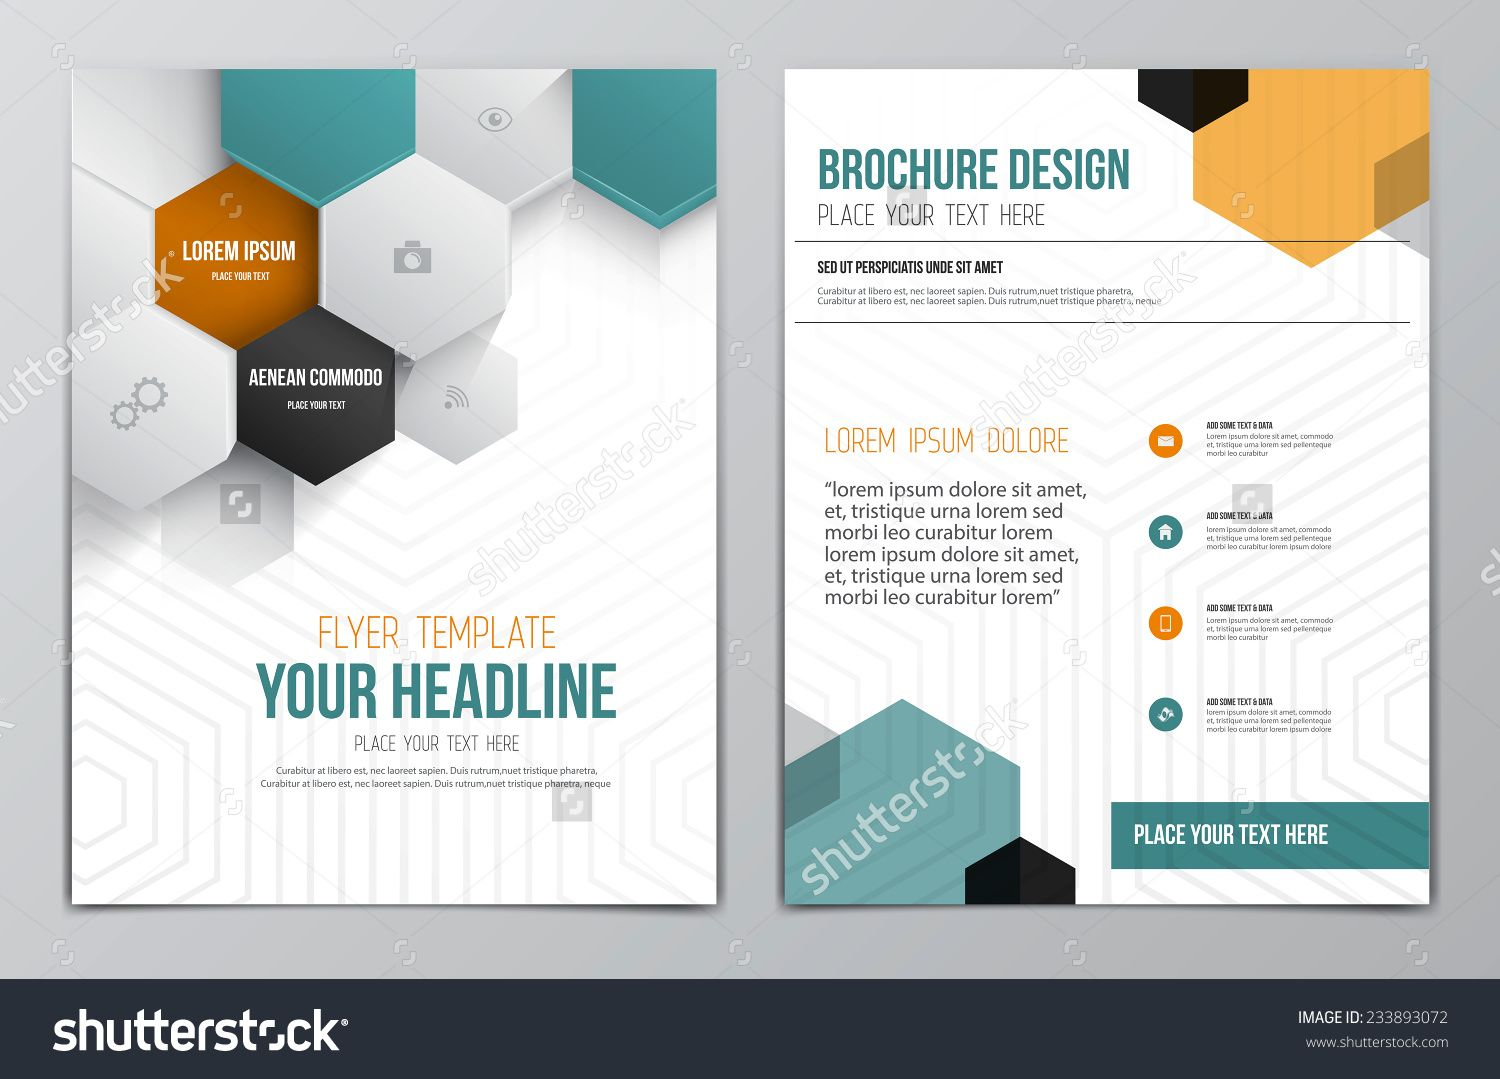 brochure templates design - brochure design template geometric shapes abstract